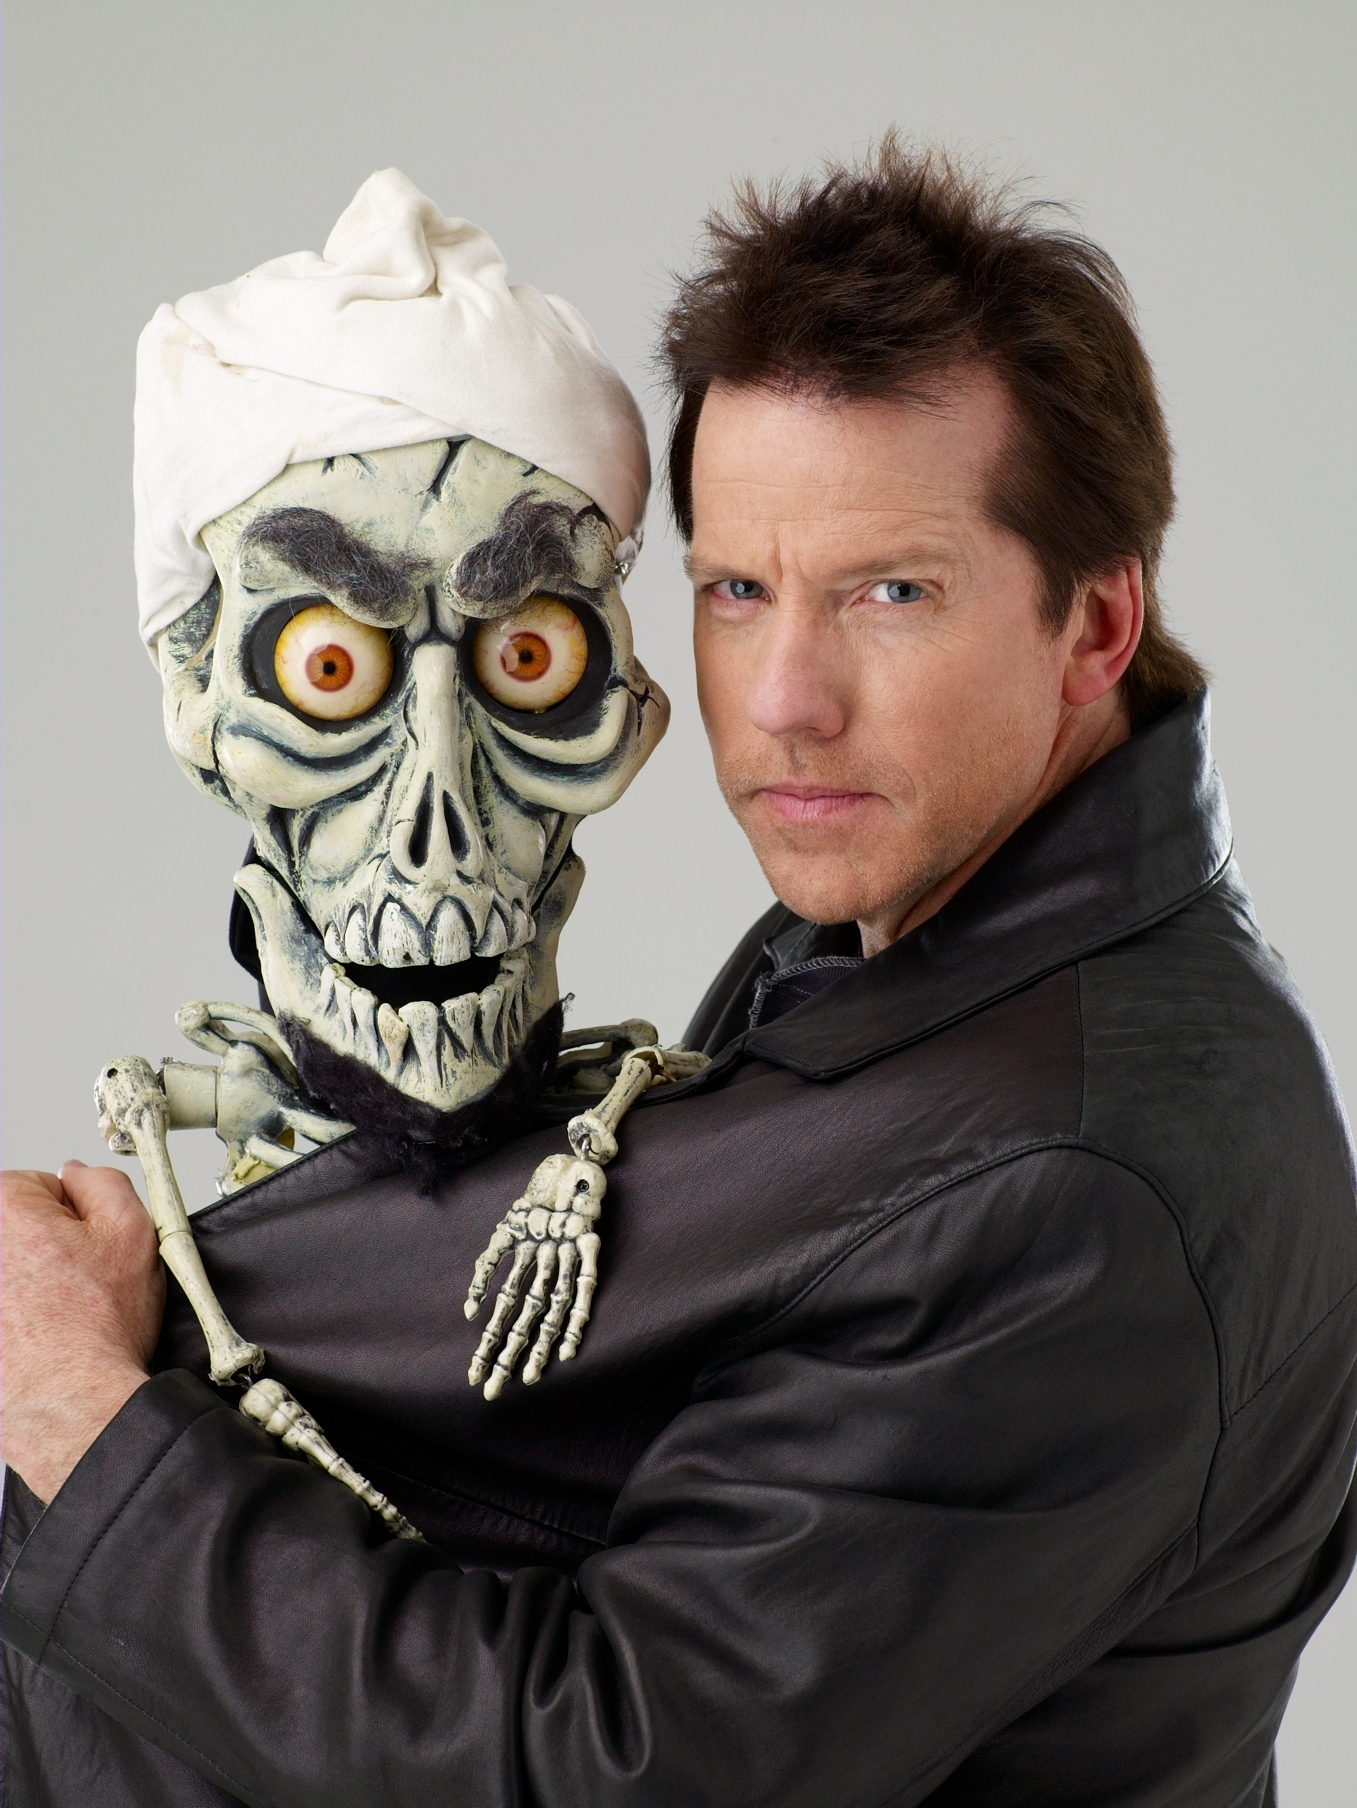 Marketing Viral: Achmed, The Dead Terrorist